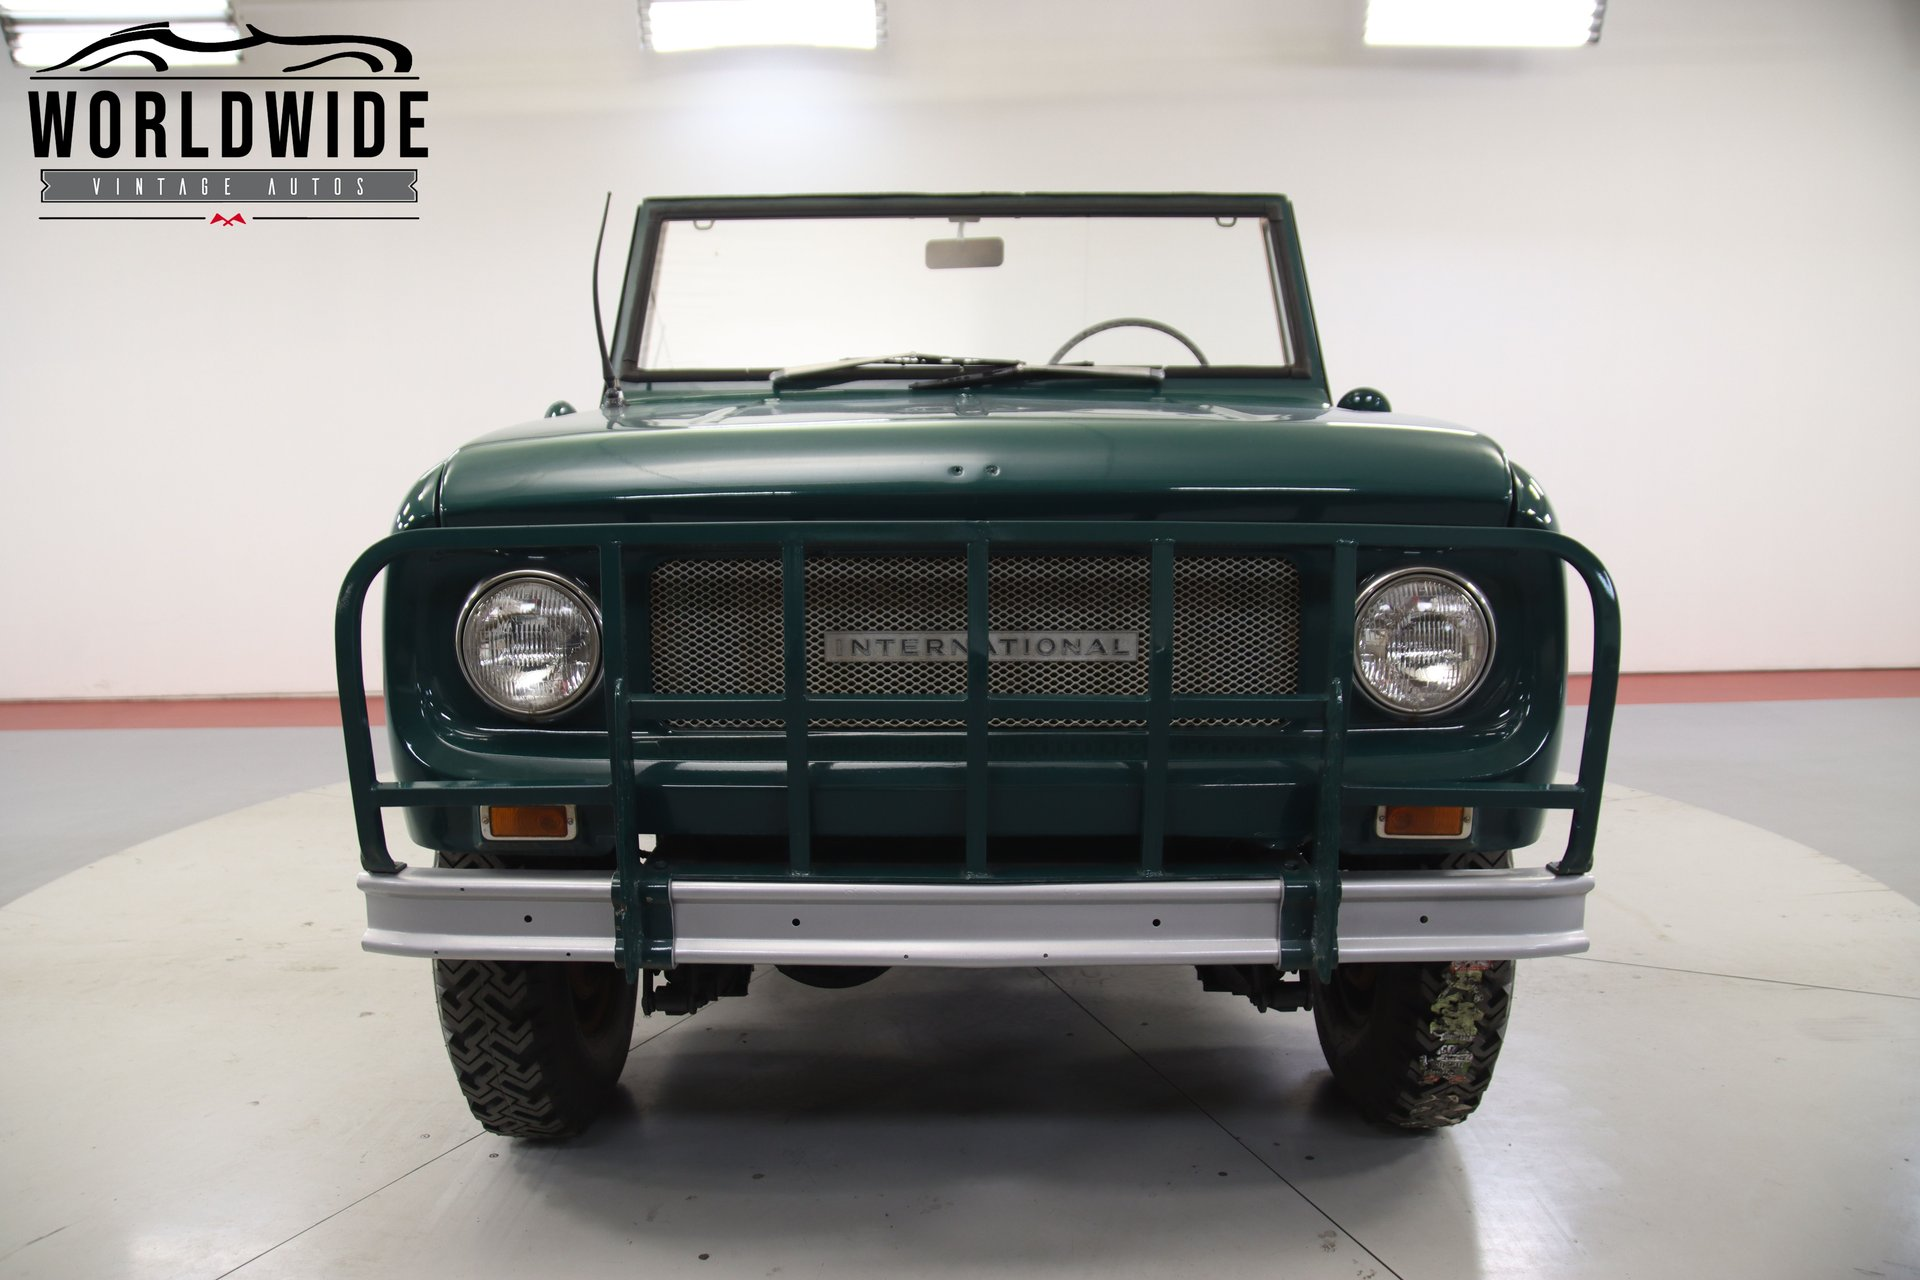 1968 International Scout 80